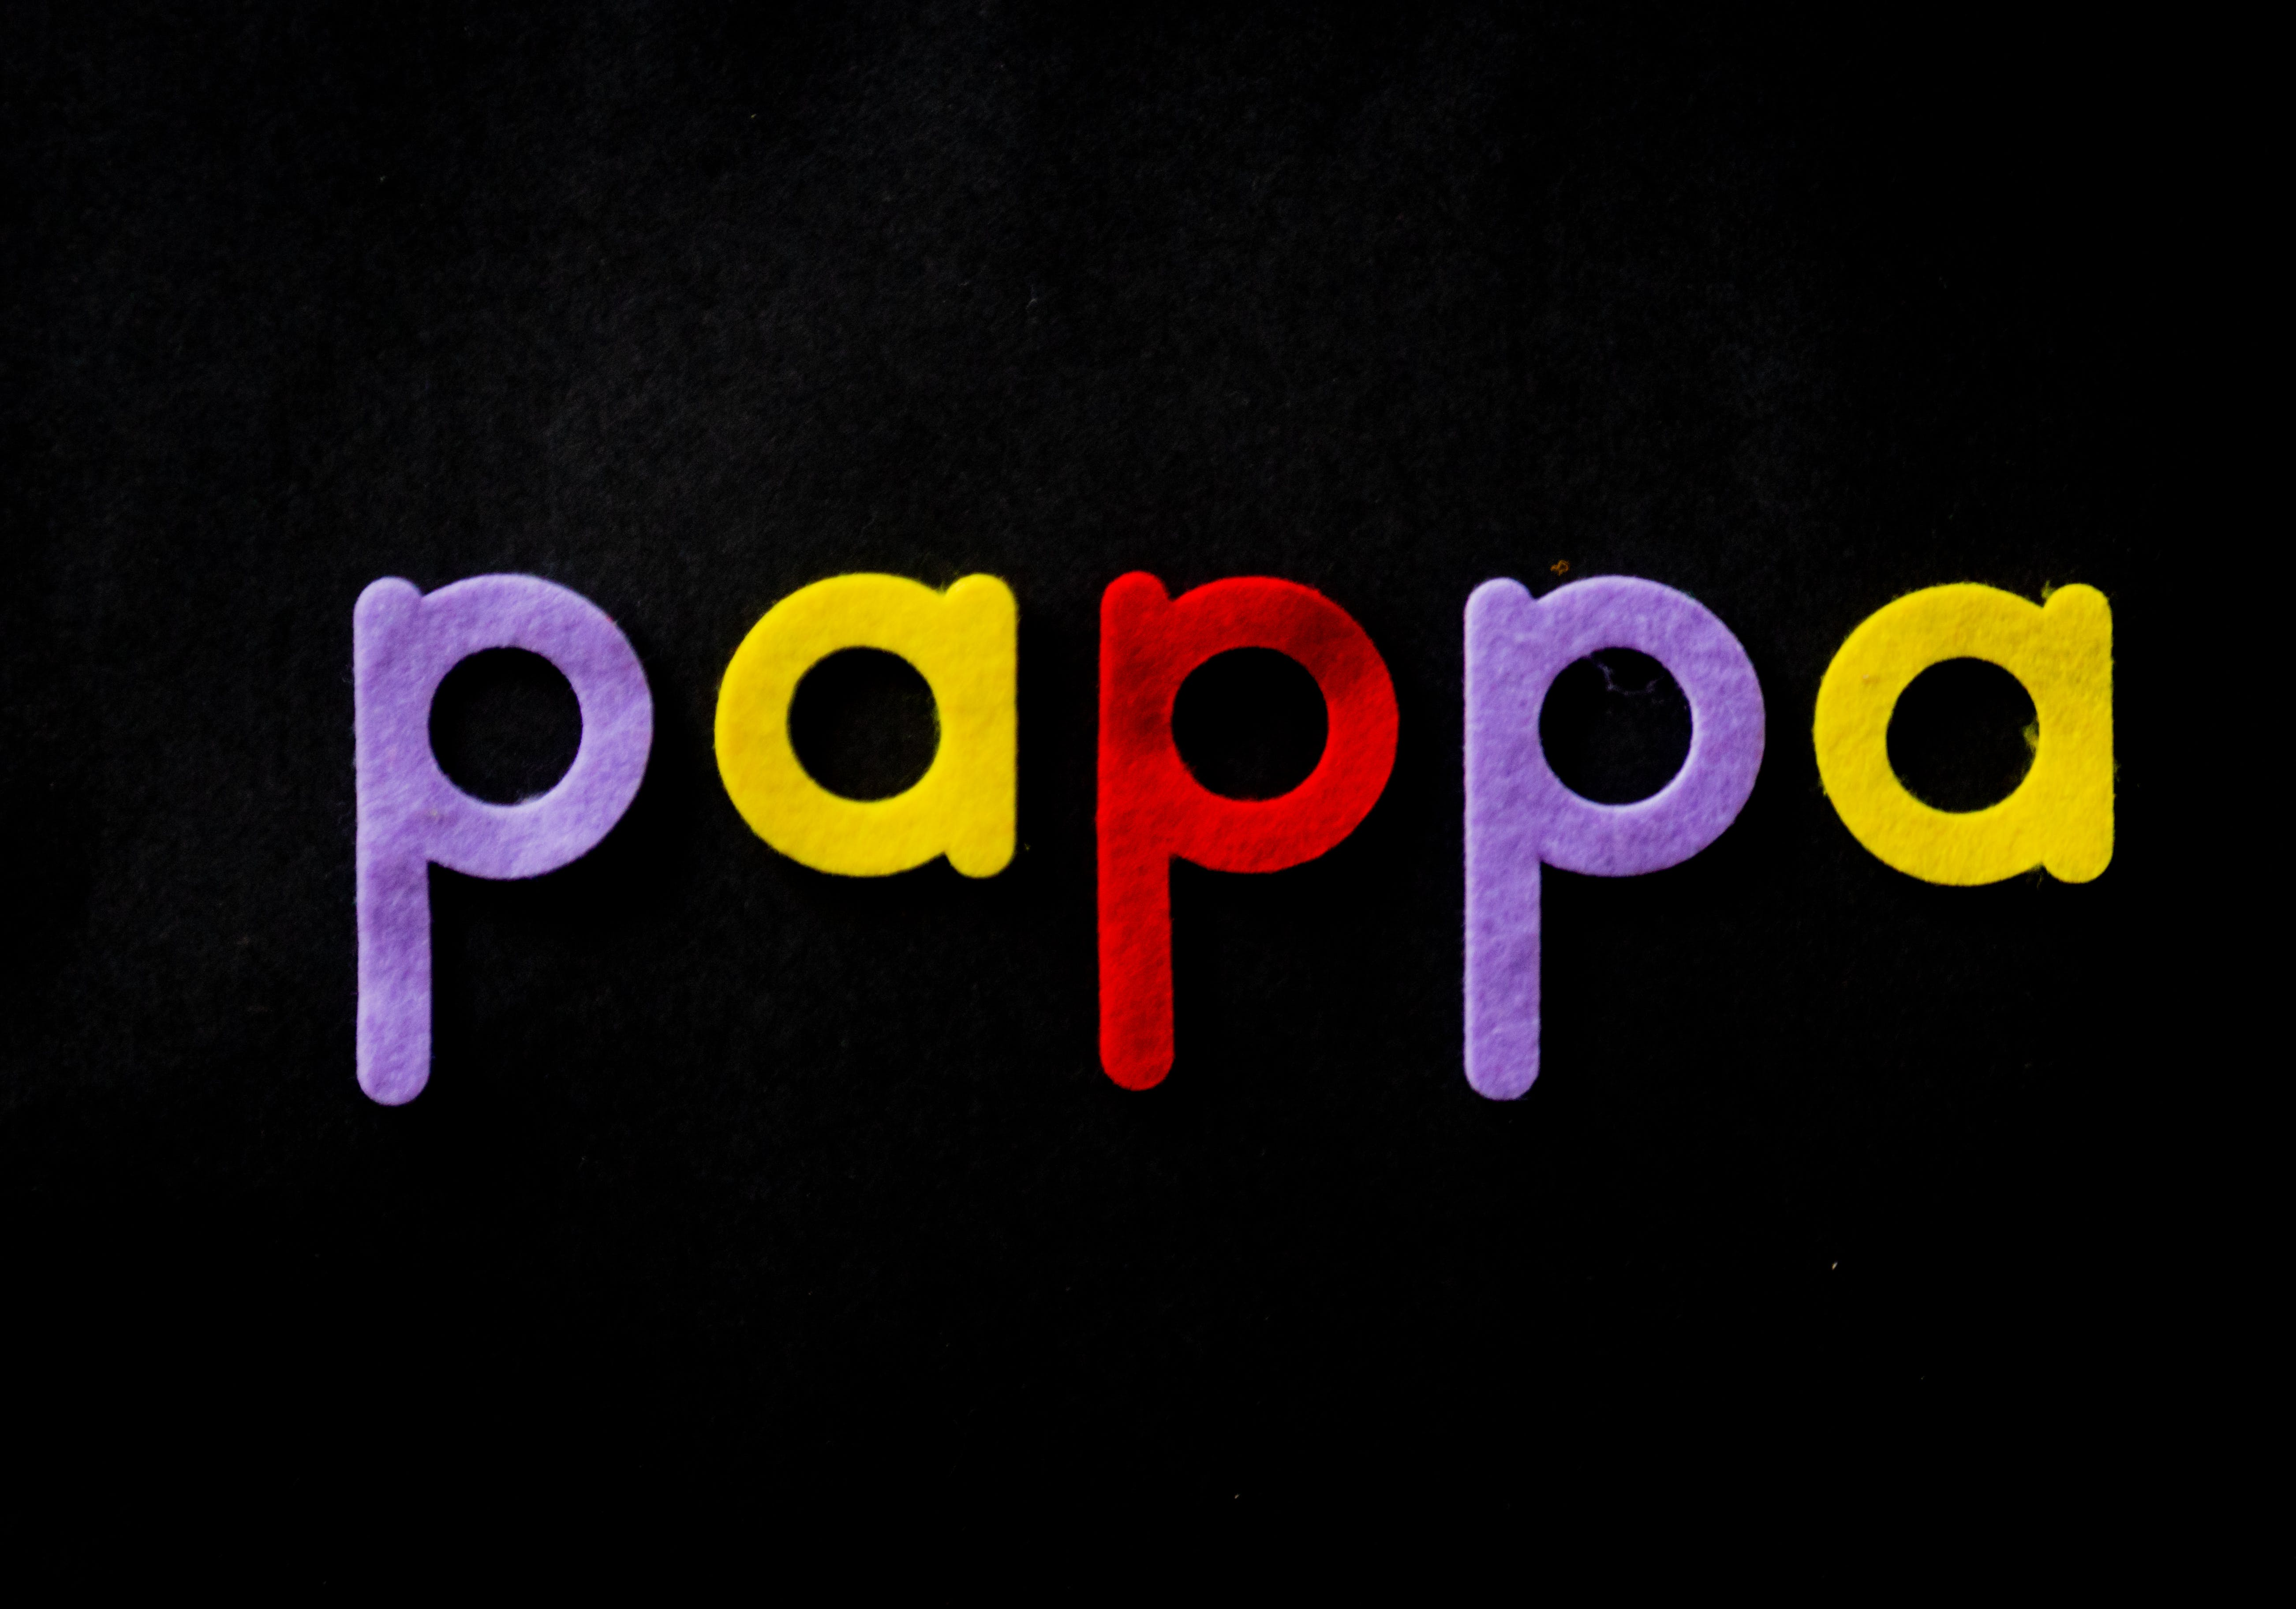 Black Background With Pappa Text Overlay